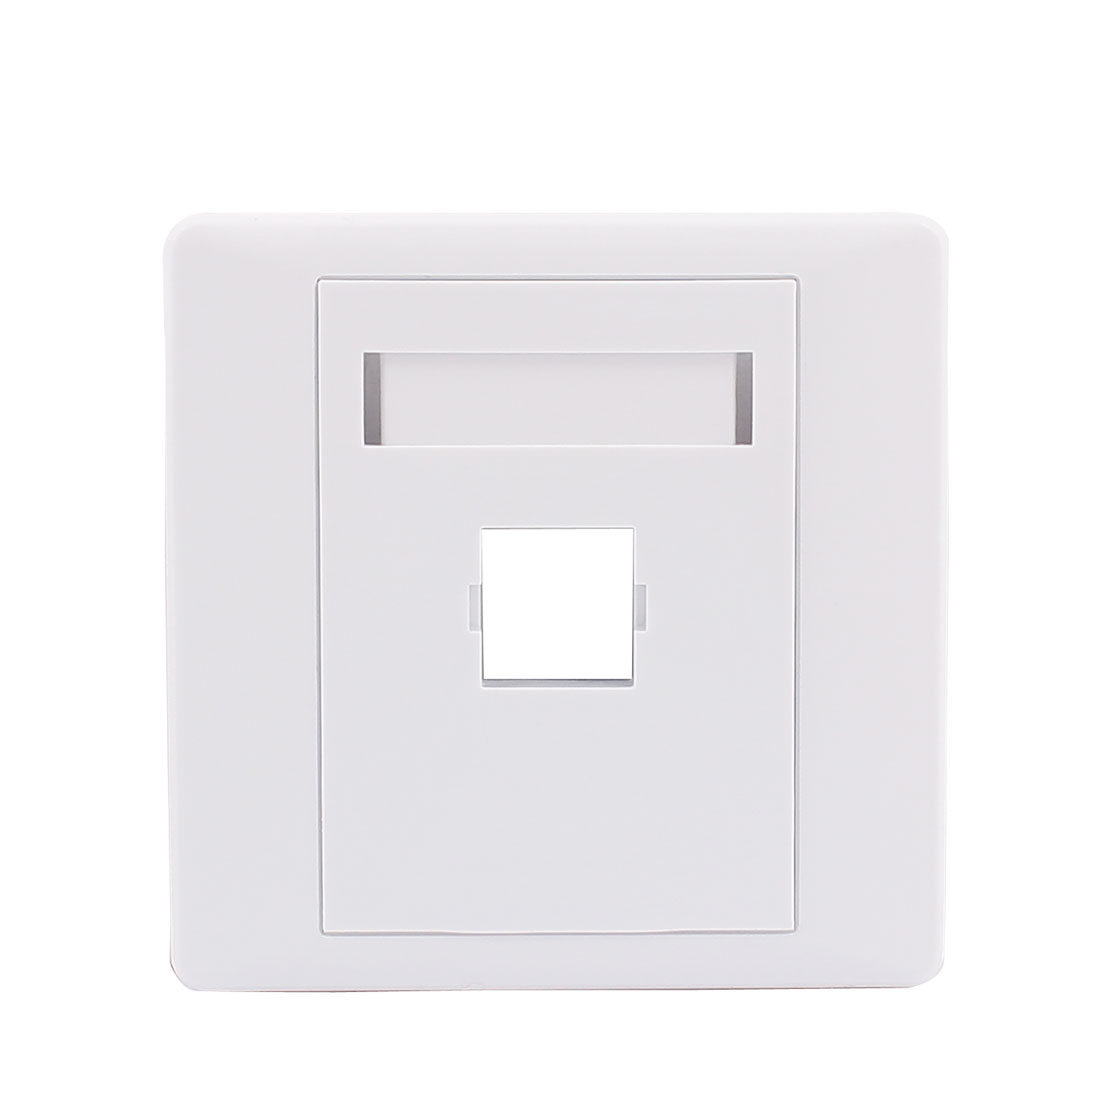 Universal Fiber Optical Cord Connector Mount Sockets Wall Plate Panel